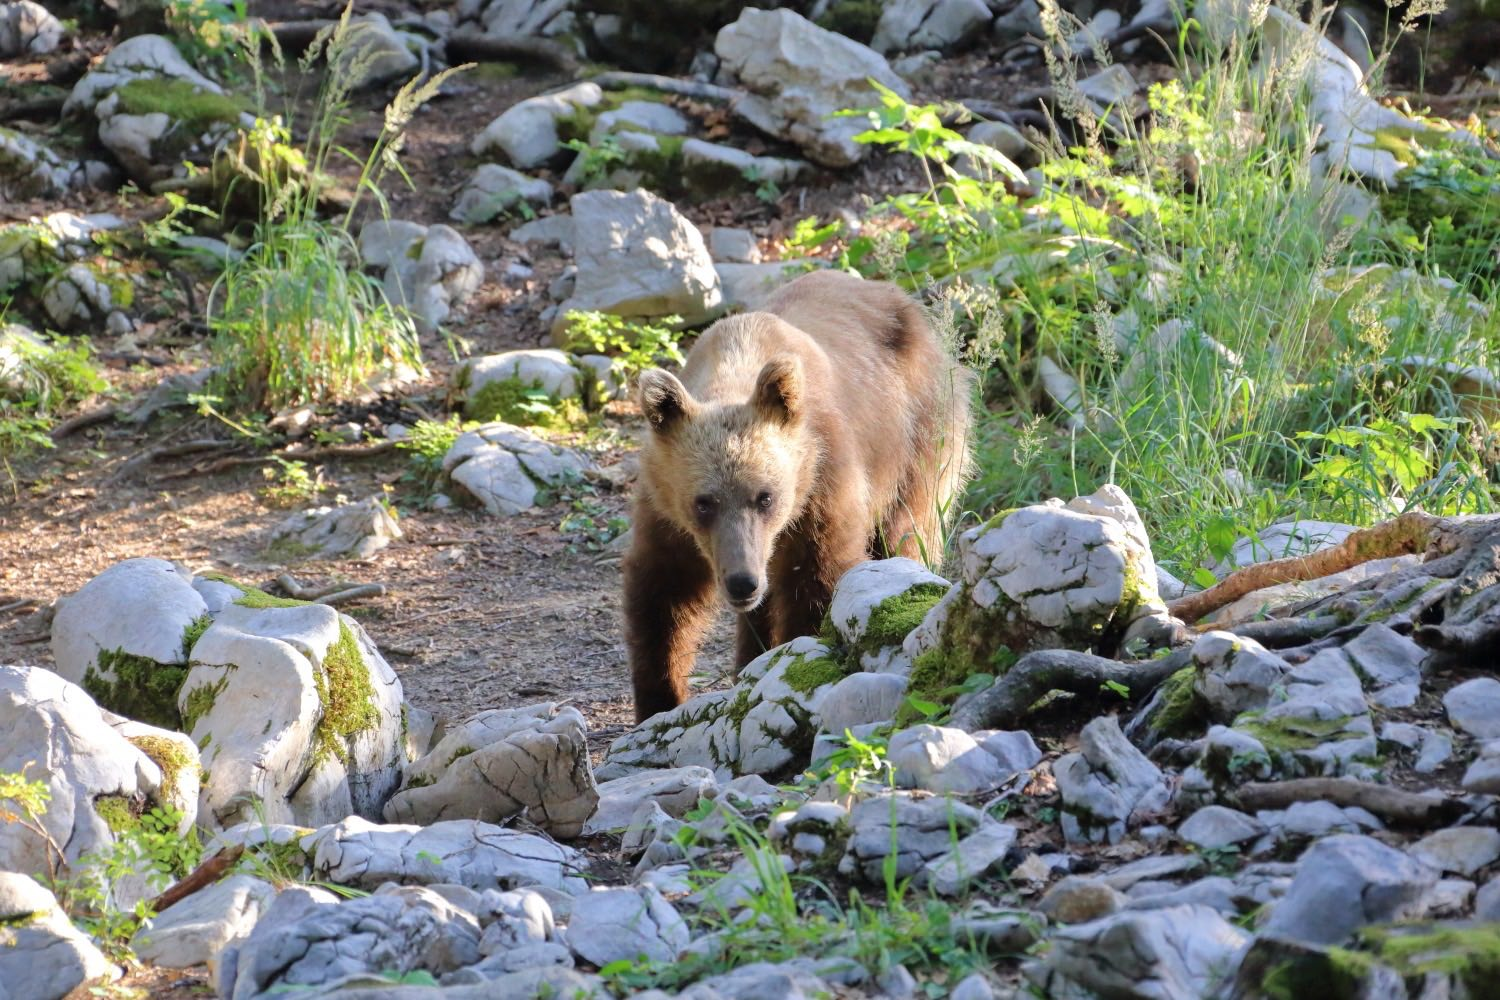 Slovenia is the land of bears, you can find more or less 700 of bears free in the wild, so watch your steps when you are walking inside the forest... 18 July 2015.   1/500 s, f/8, -1/3 EV, ISO 3200, 300 mm, EOS 6D + EF 28-300 L